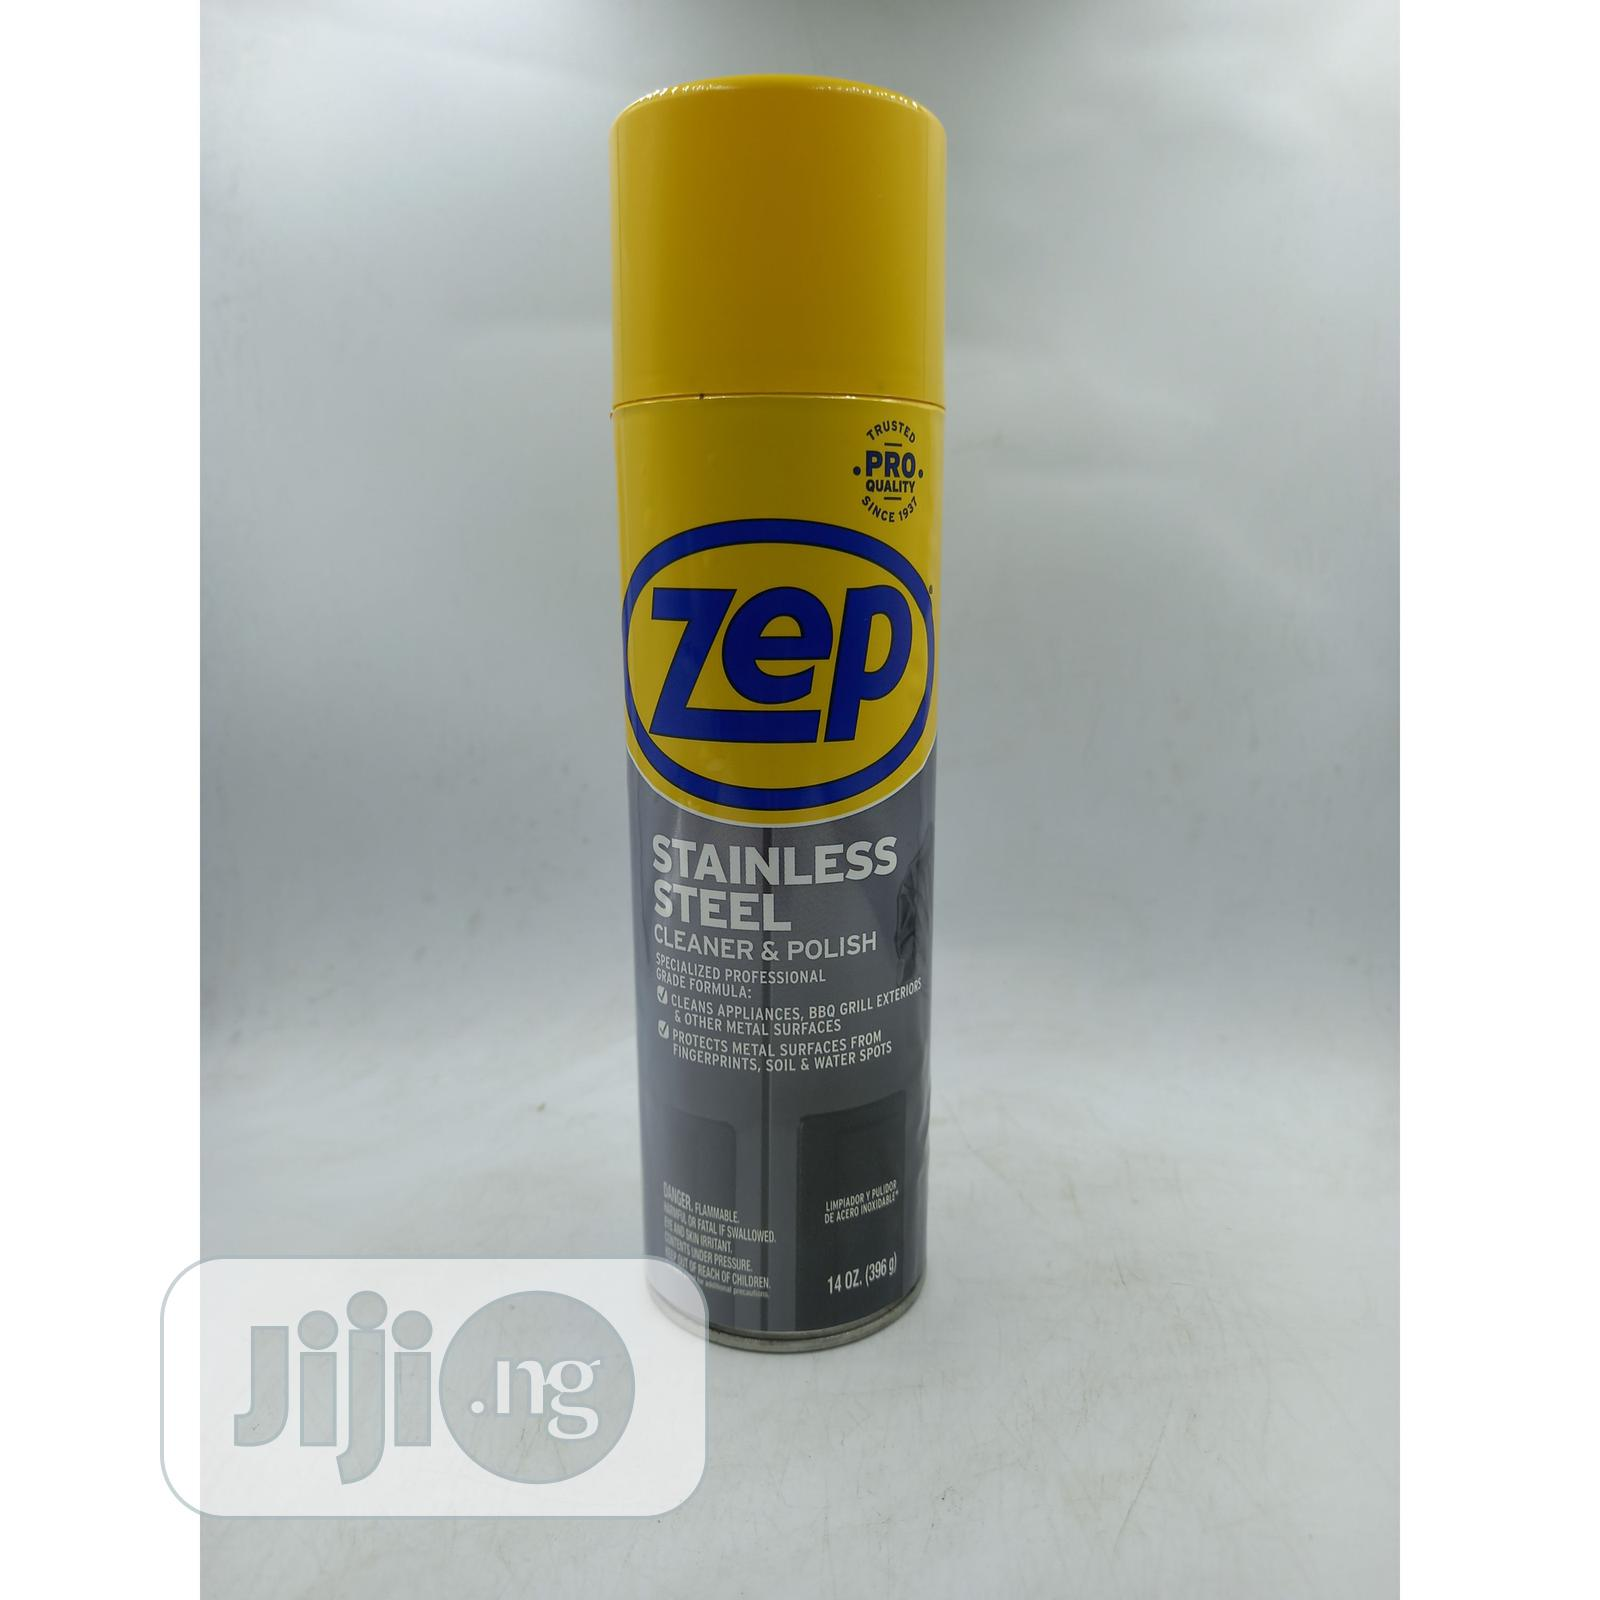 Zep Stainless Steel Cleaner Polish